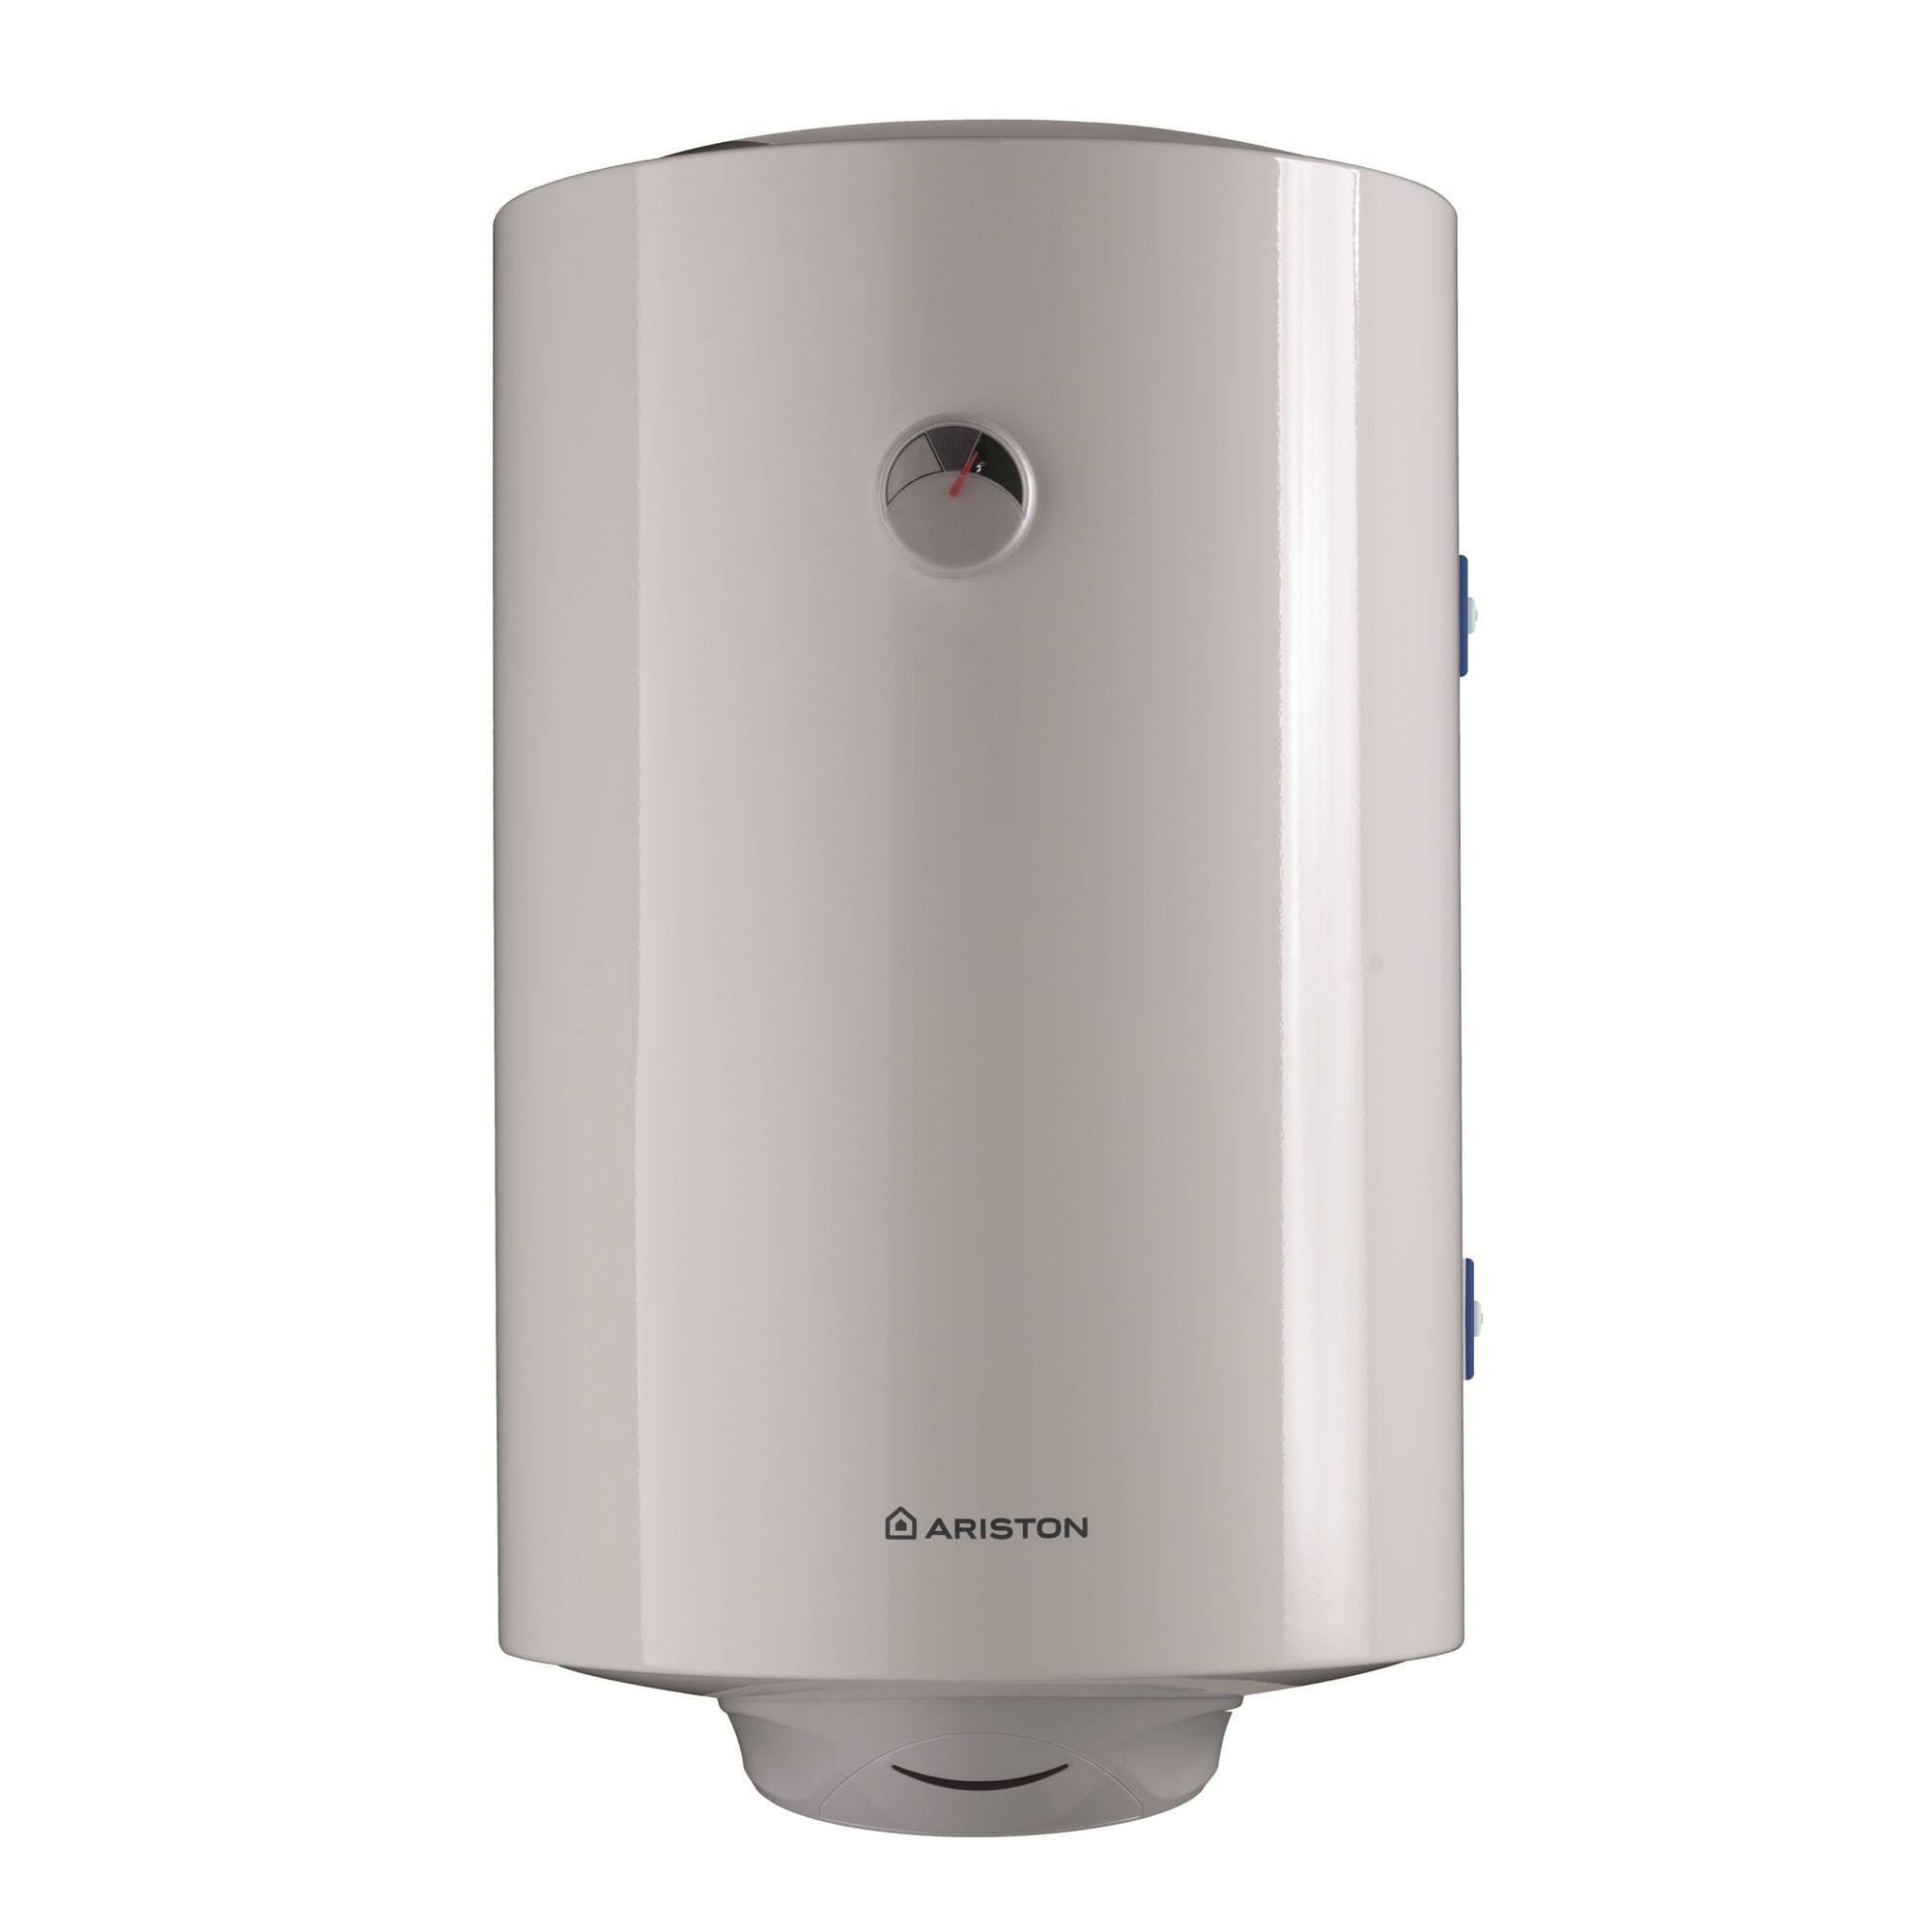 Boiler termoelectric Ariston Pro R 100 VTS cu serpentina 100 L 1800 W